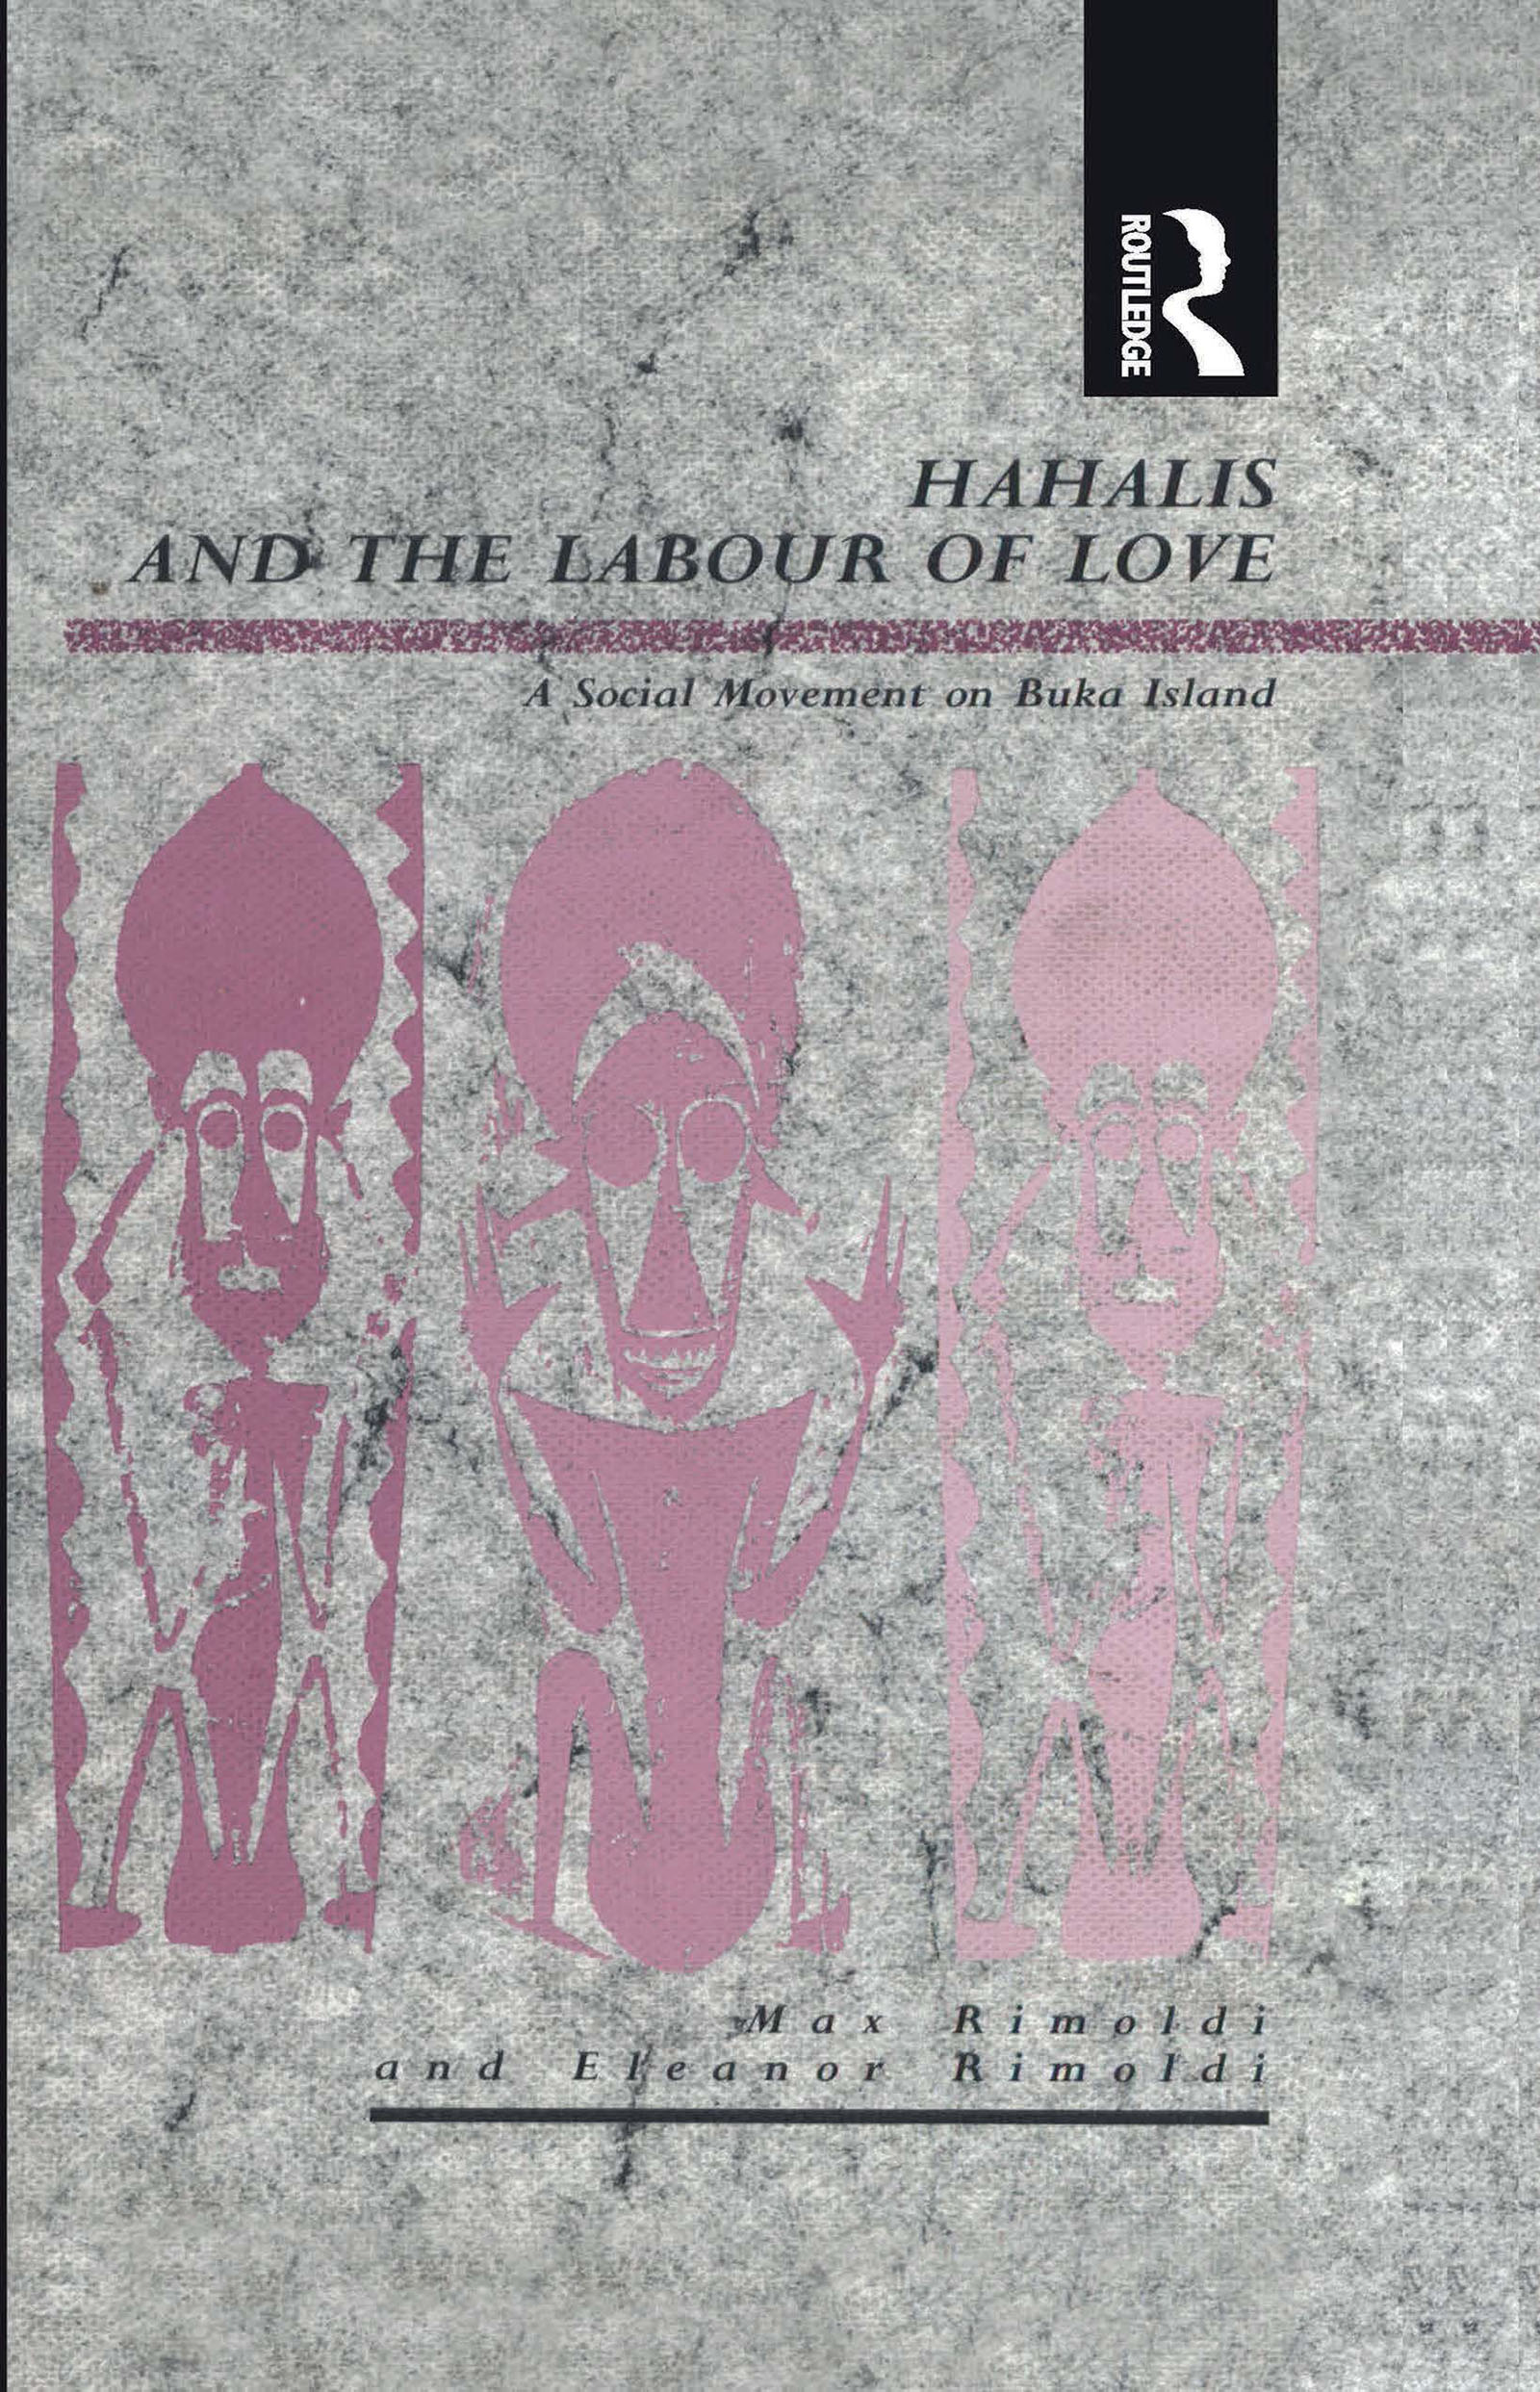 Hahalis and the Labour of Love